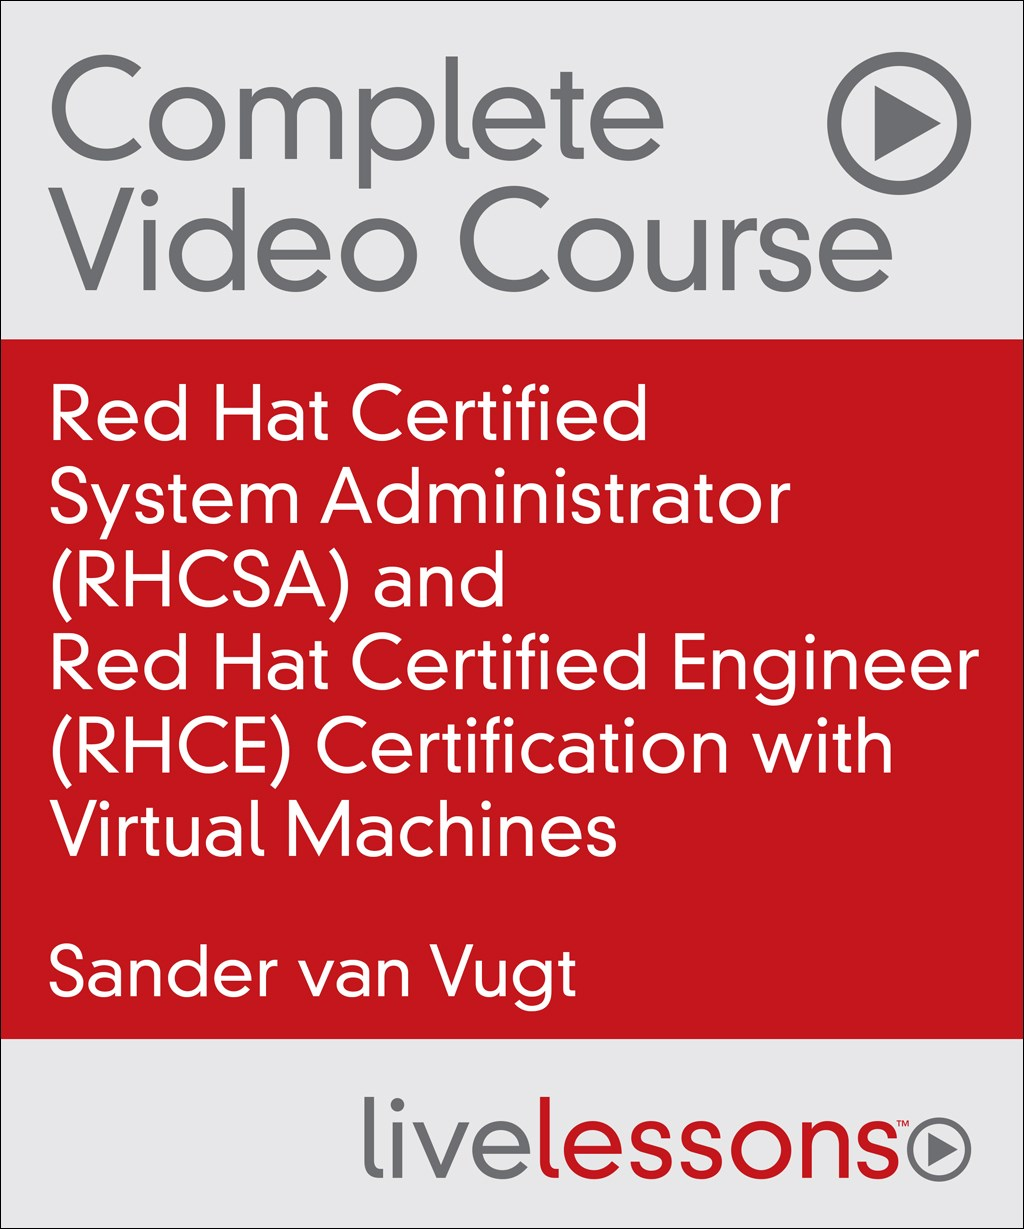 Red Hat Certified System Administrator (RHCSA) and Red Hat Certified Engineer (RHCE) Certification with Virtual Machines, 2nd Edition